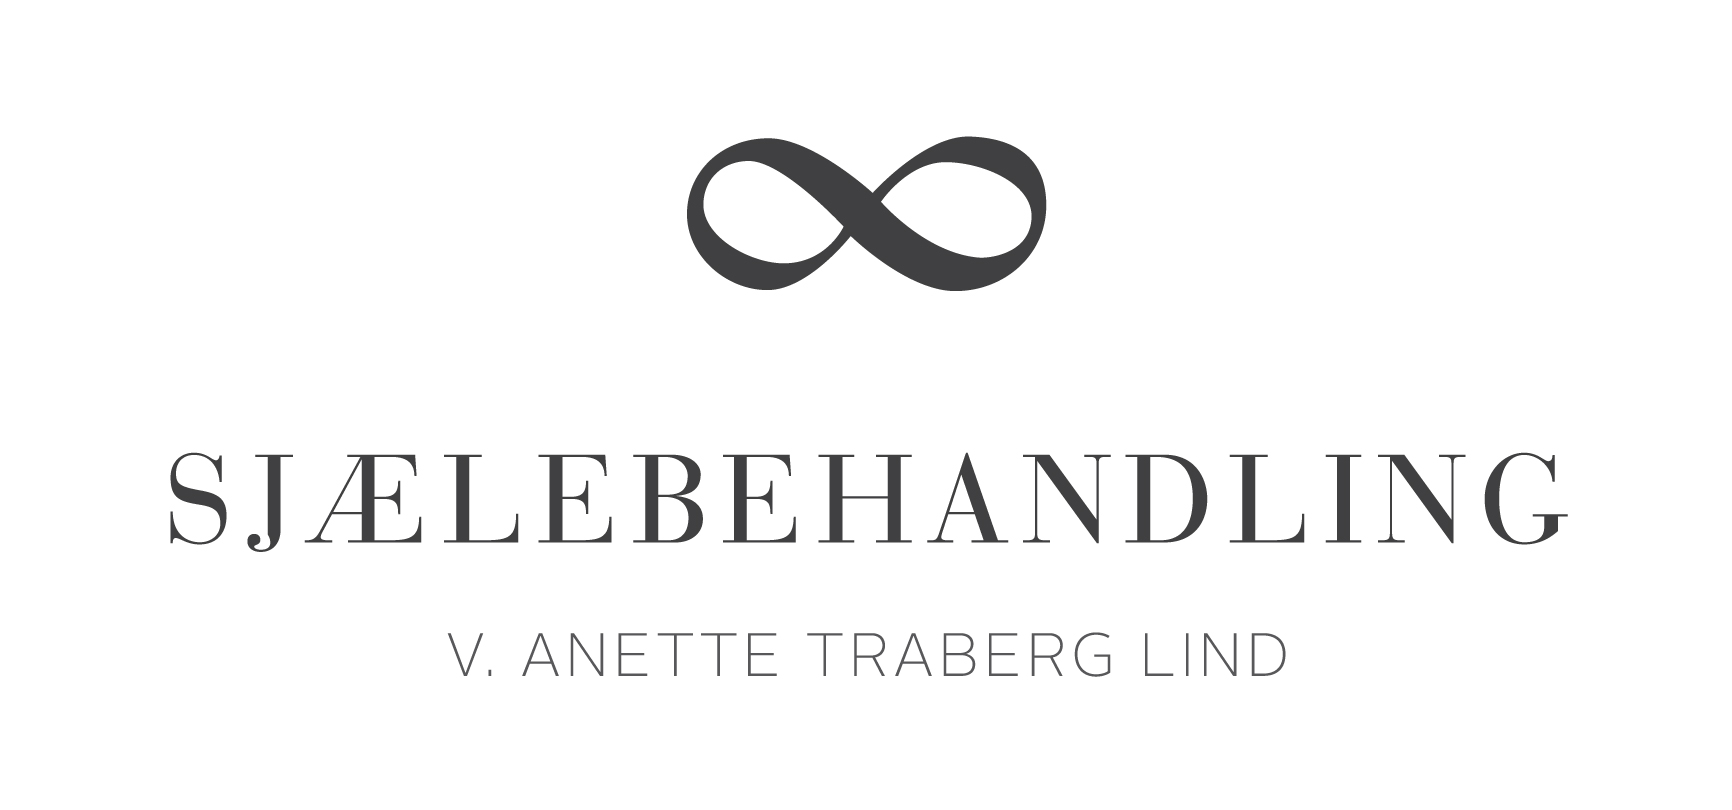 Anette Traberg Lind